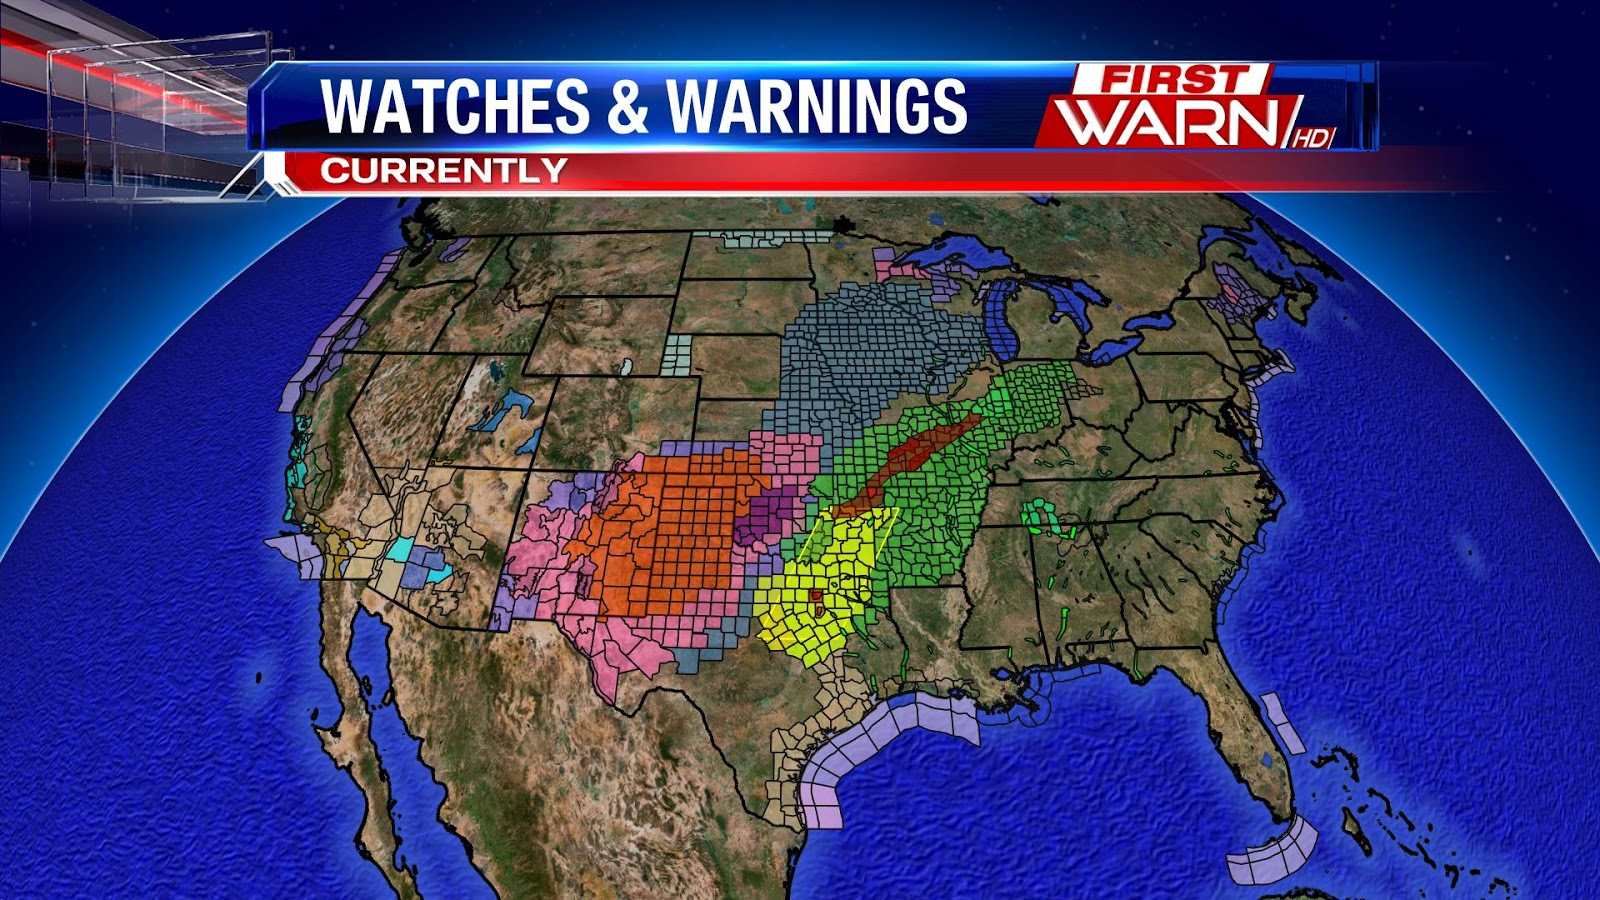 with those two extremes you can see how strong and potent this storm system is the map to the left shows the current watches and warnings